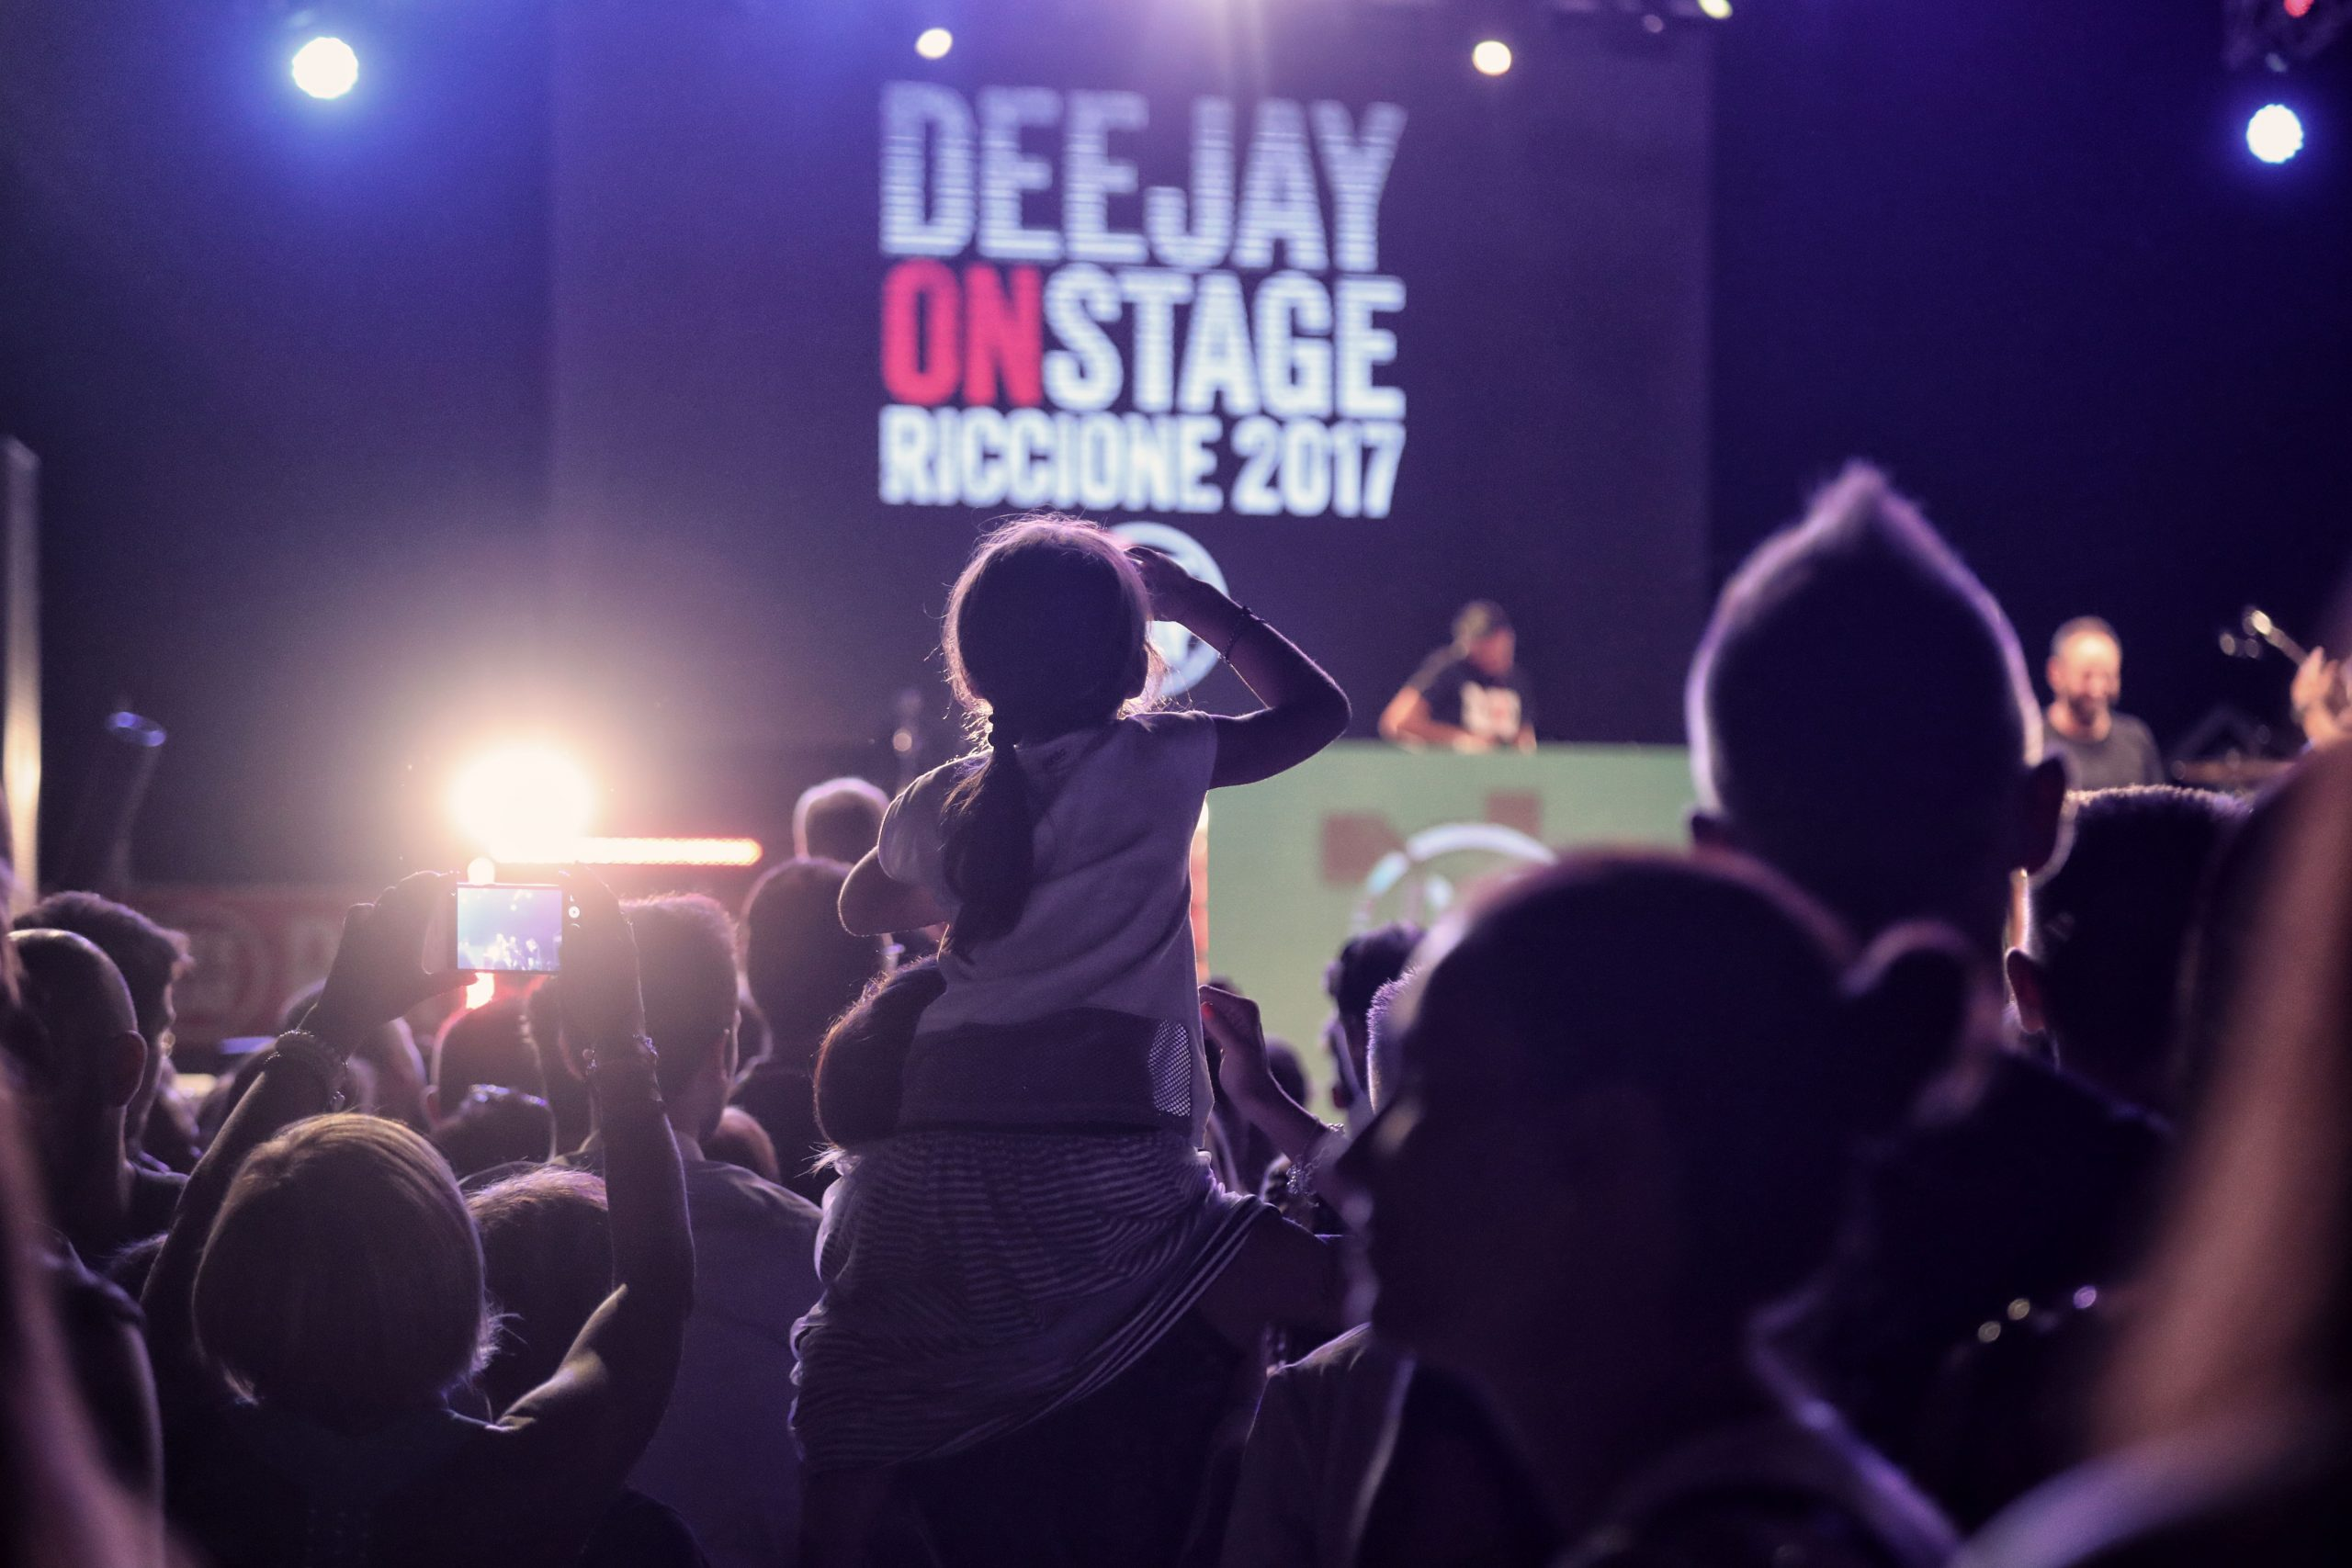 Deehay on stage